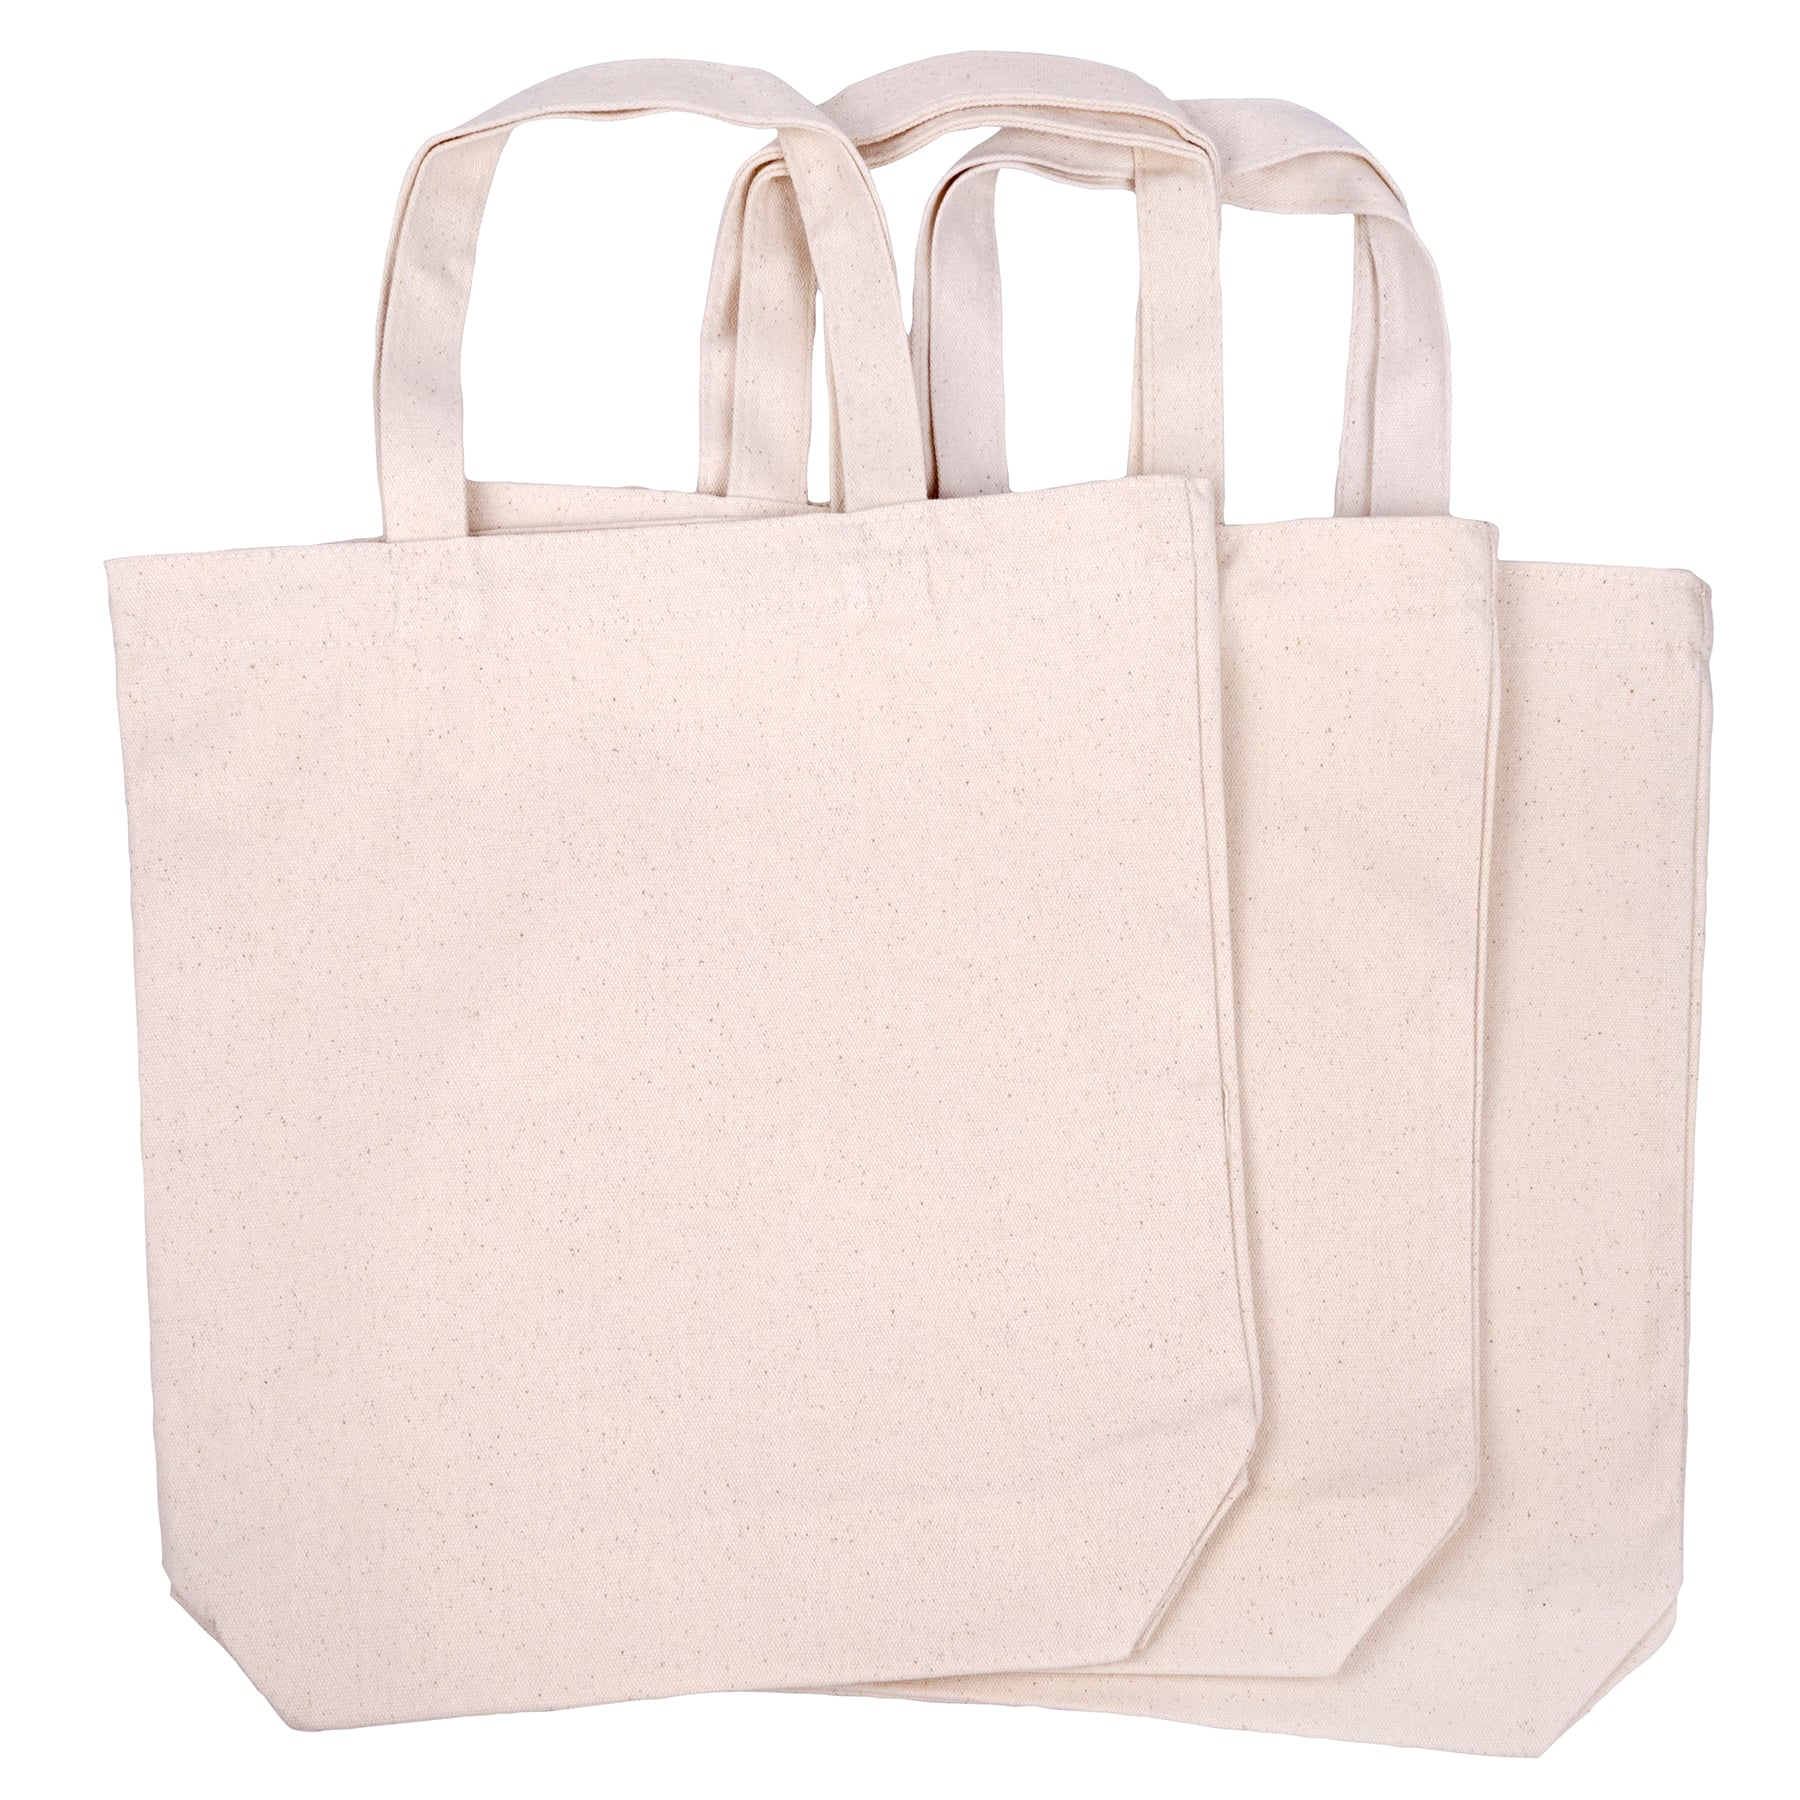 Natural Ink Craft Bulk Cotton Canvas Tote Bags Reusable Grocery Shopping Blank Tote Bags in Bulk Blank Art Craft Party Blank Goods Bags Wholesale Tote Bags 25 Ivory,